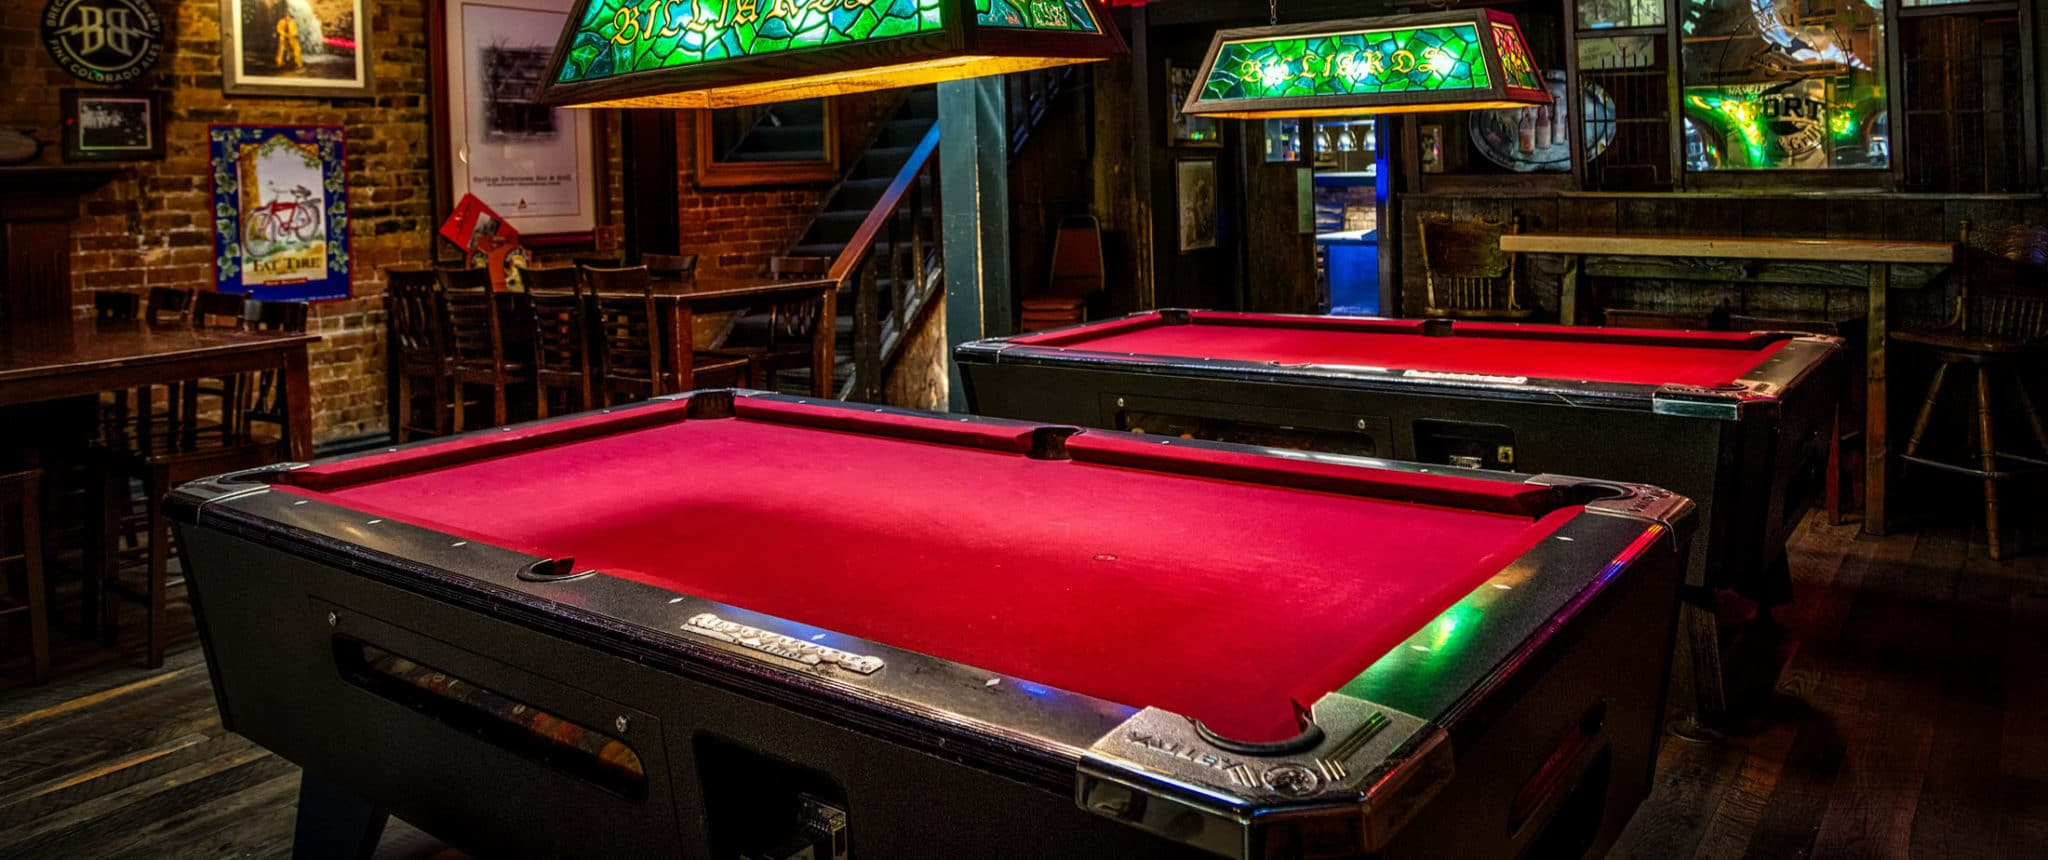 Used Coin Operated Bar Pool Tables We Strive To Make Each Used Bar - What's the size of a pool table